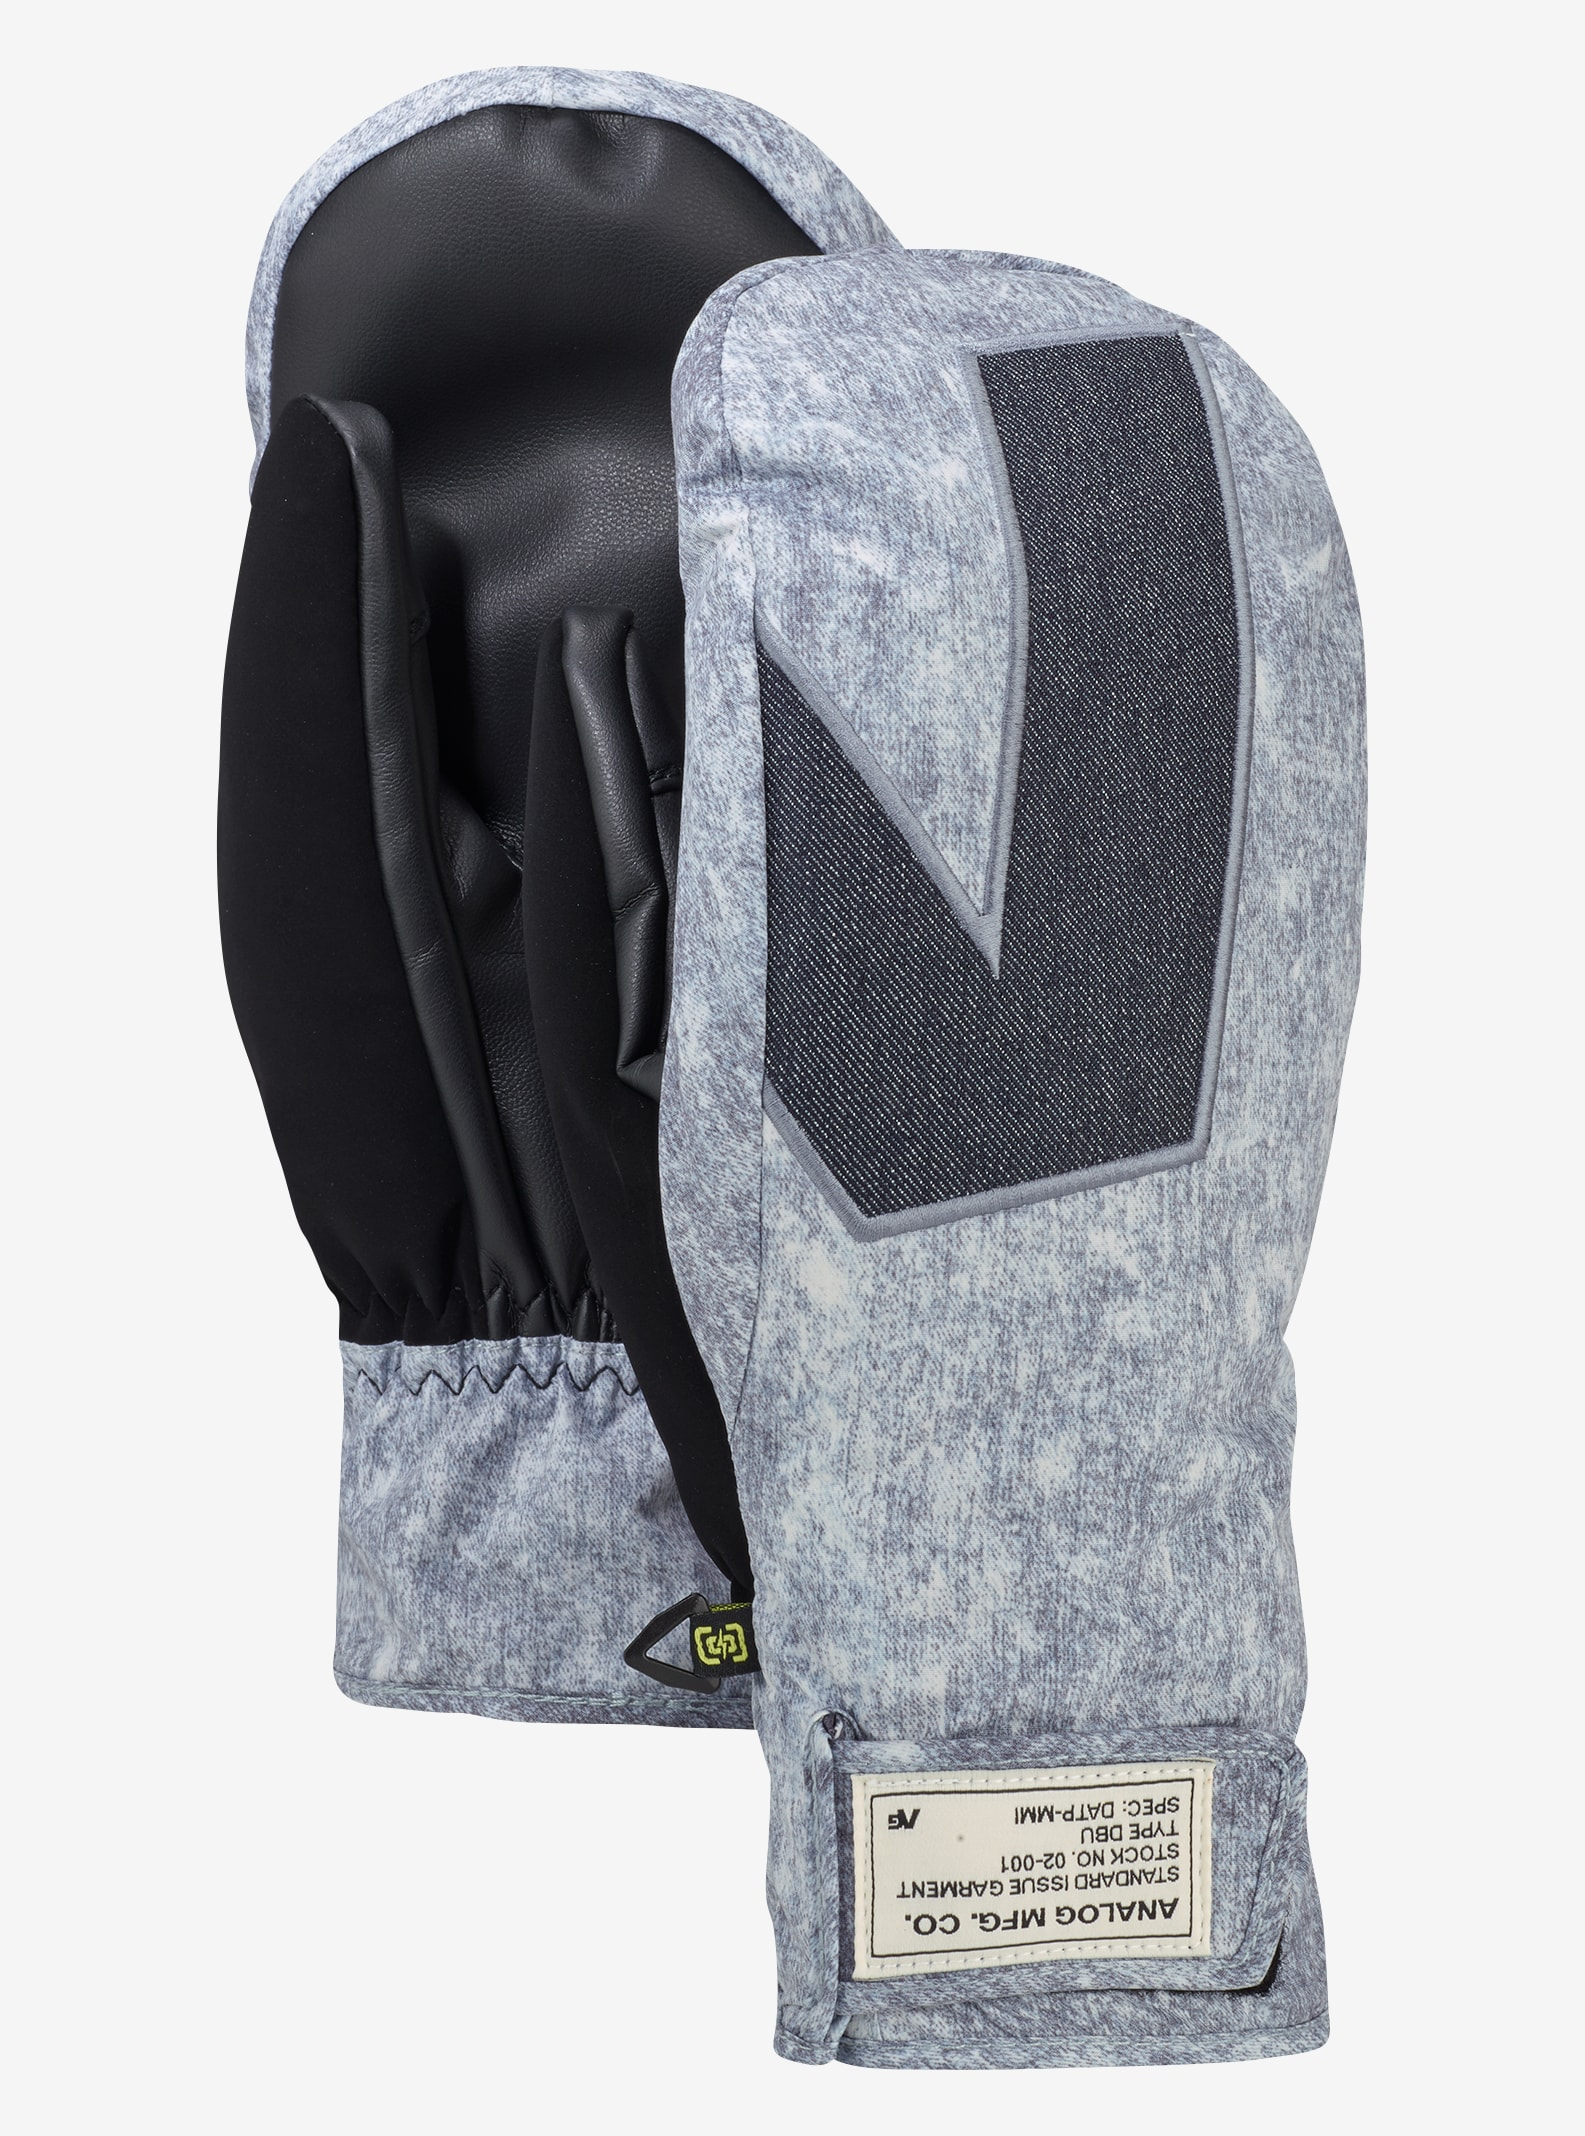 Men's Analog Gentry Mitt shown in Blackjack Wash / Denim